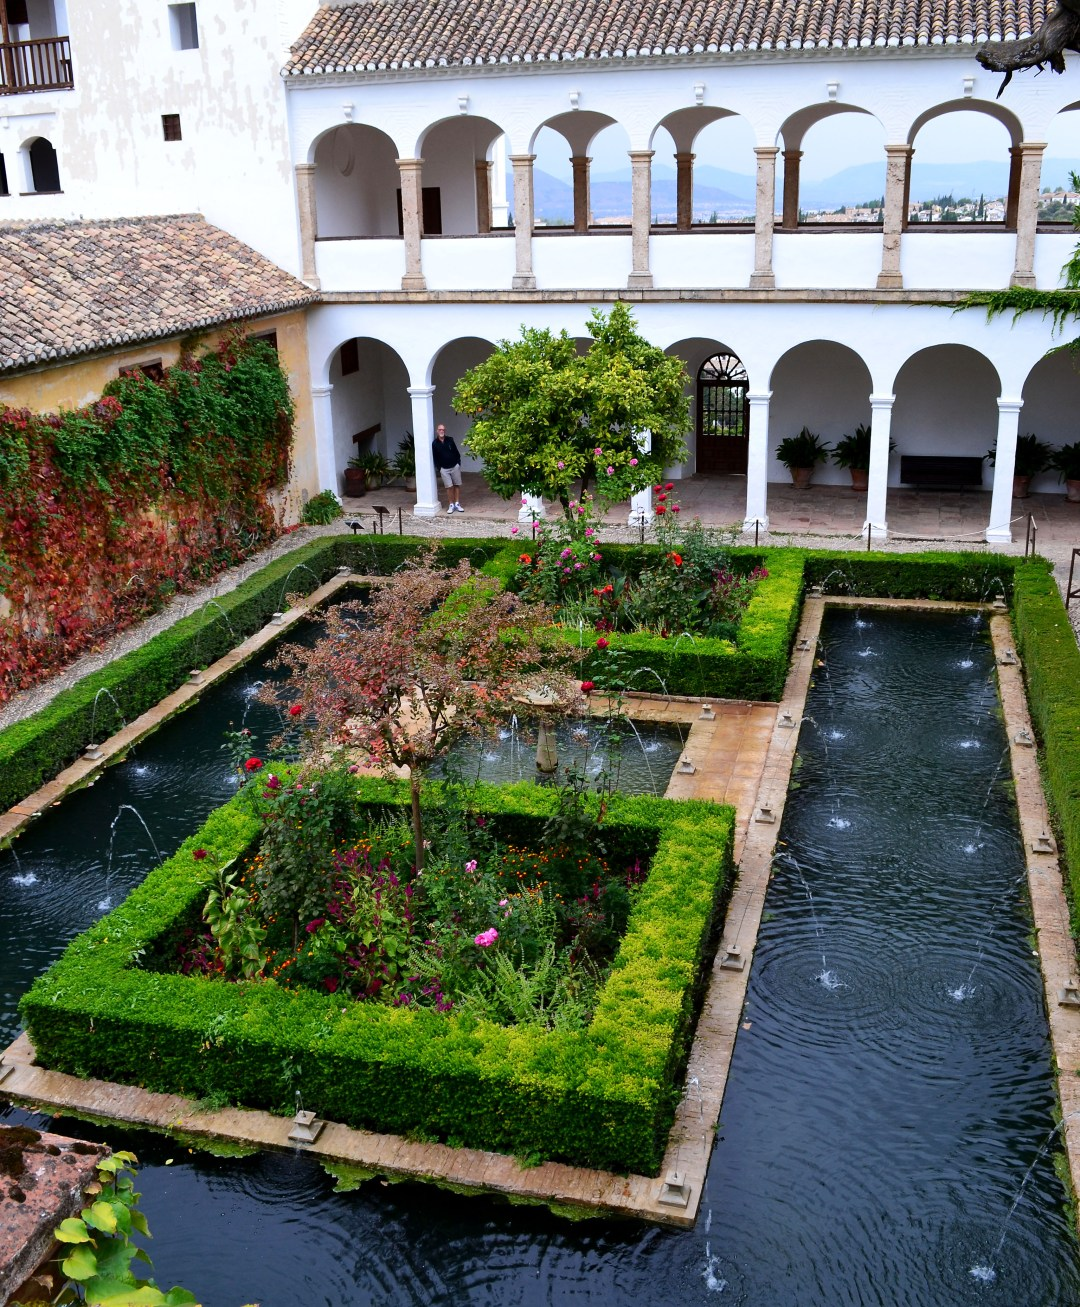 Generalife World Heritage Site reservoir pool